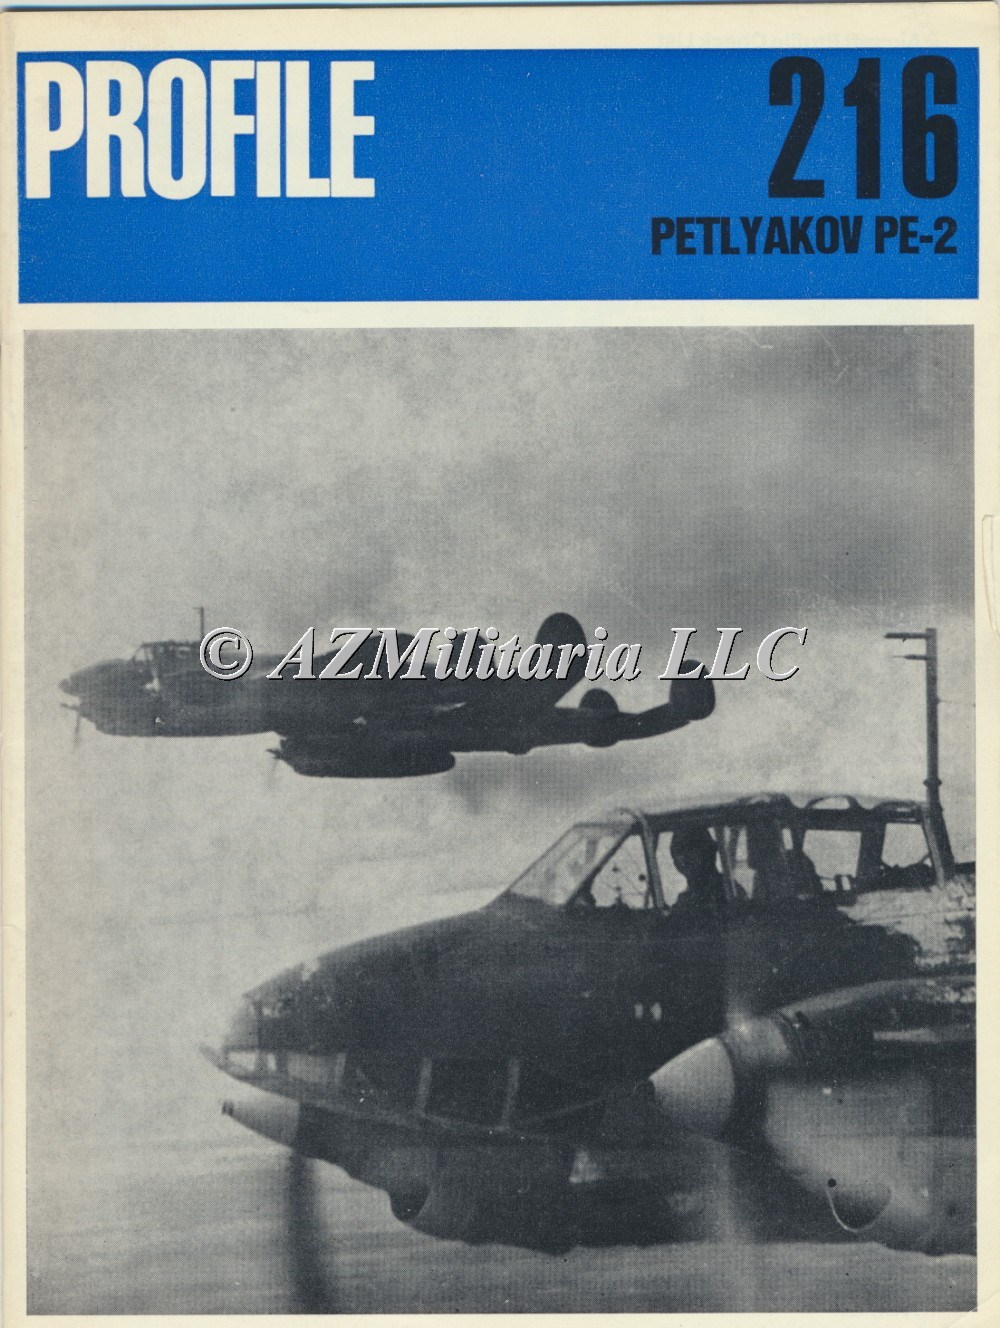 Primary image for Aircraft Profile Number 216: PETLYAKOV PE-2